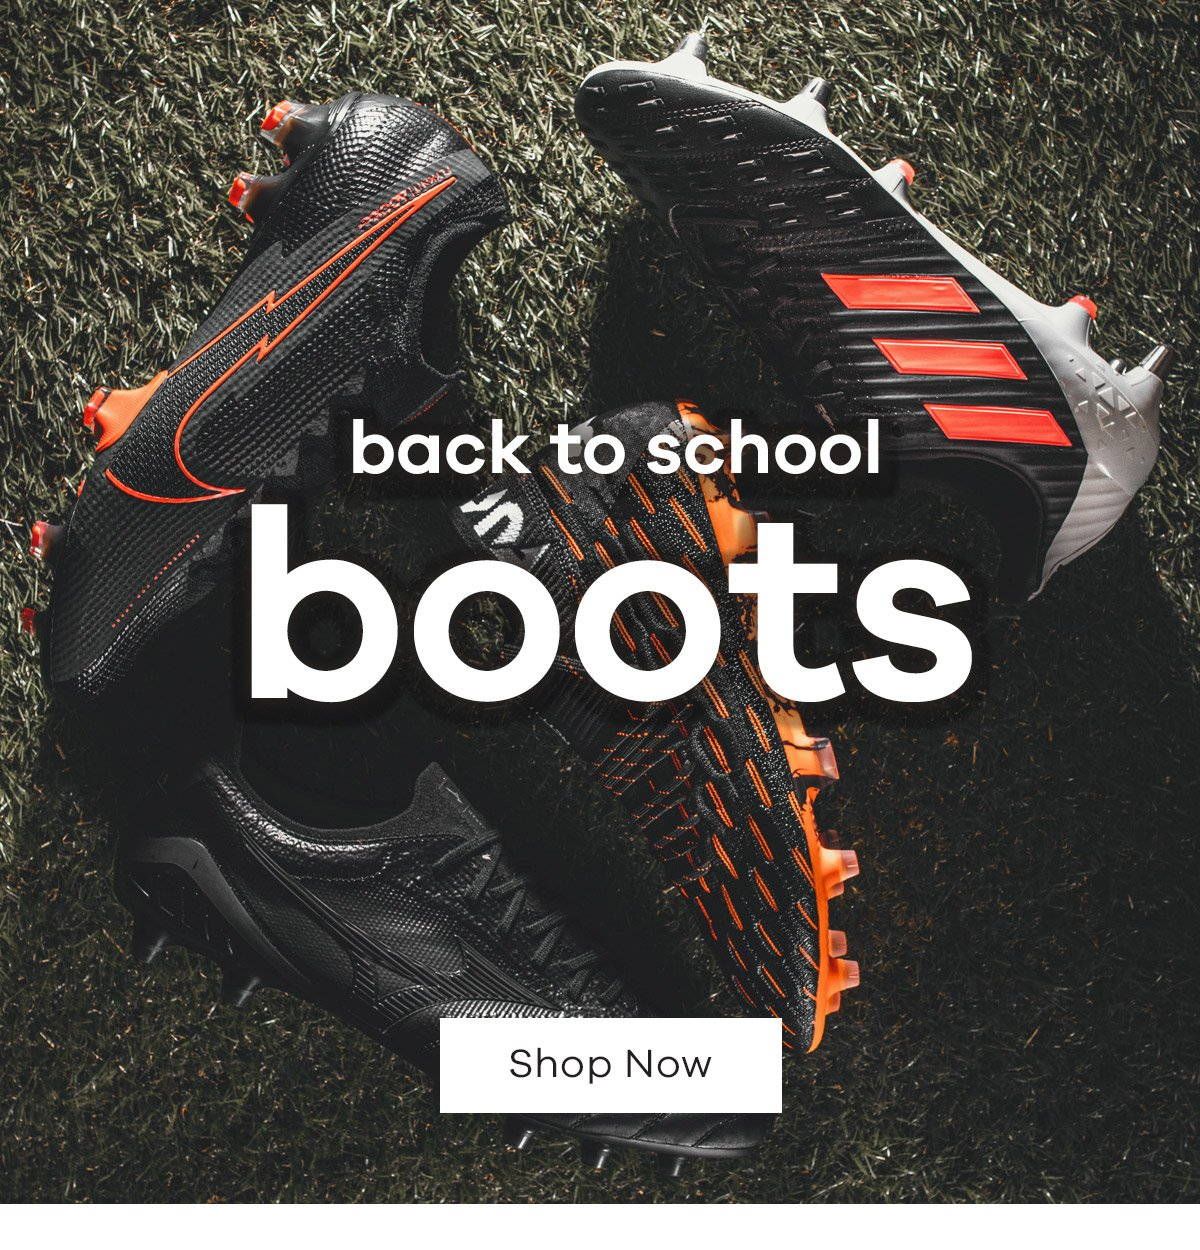 back to school boots